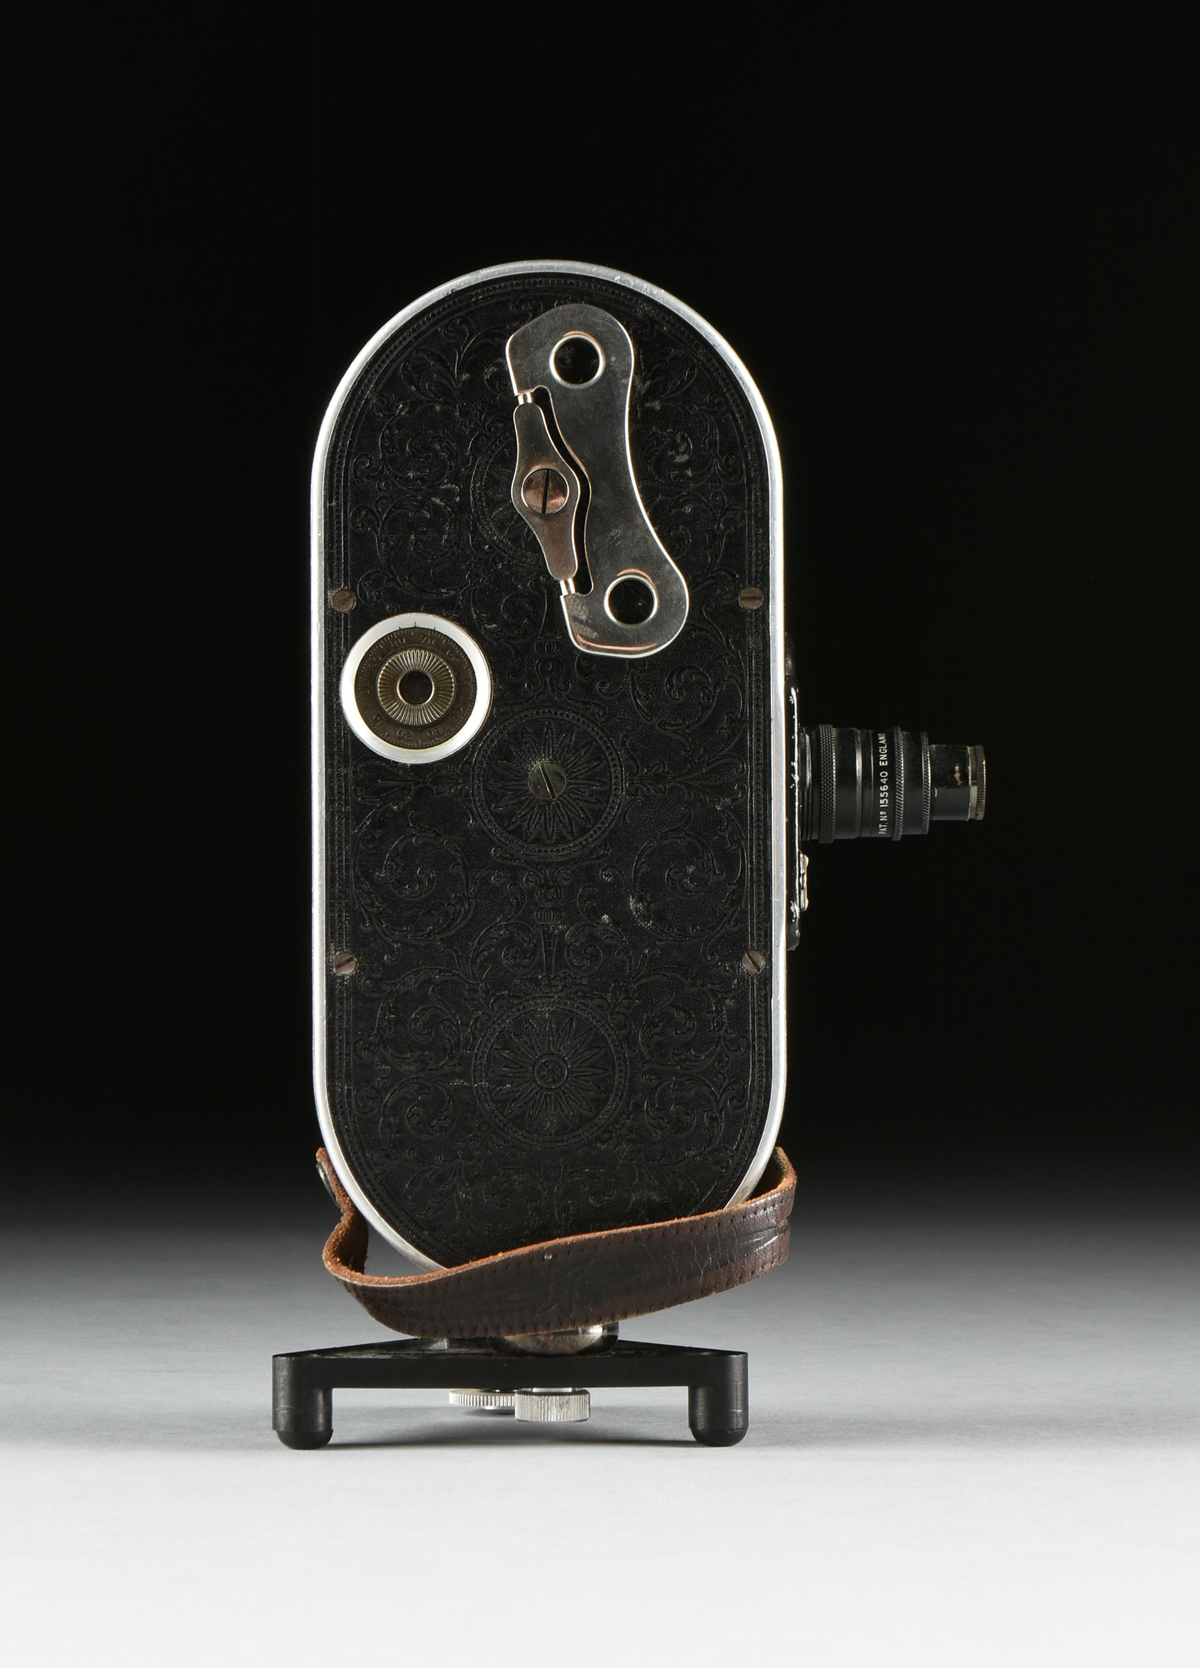 """Lot 28 - AN ANTIQUE AMERICAN BELL AND HOWELL """"FILMO FIELD MODEL"""" AUTOMATIC CINE-CAMERA, CHICAGO, 1928-1933,"""